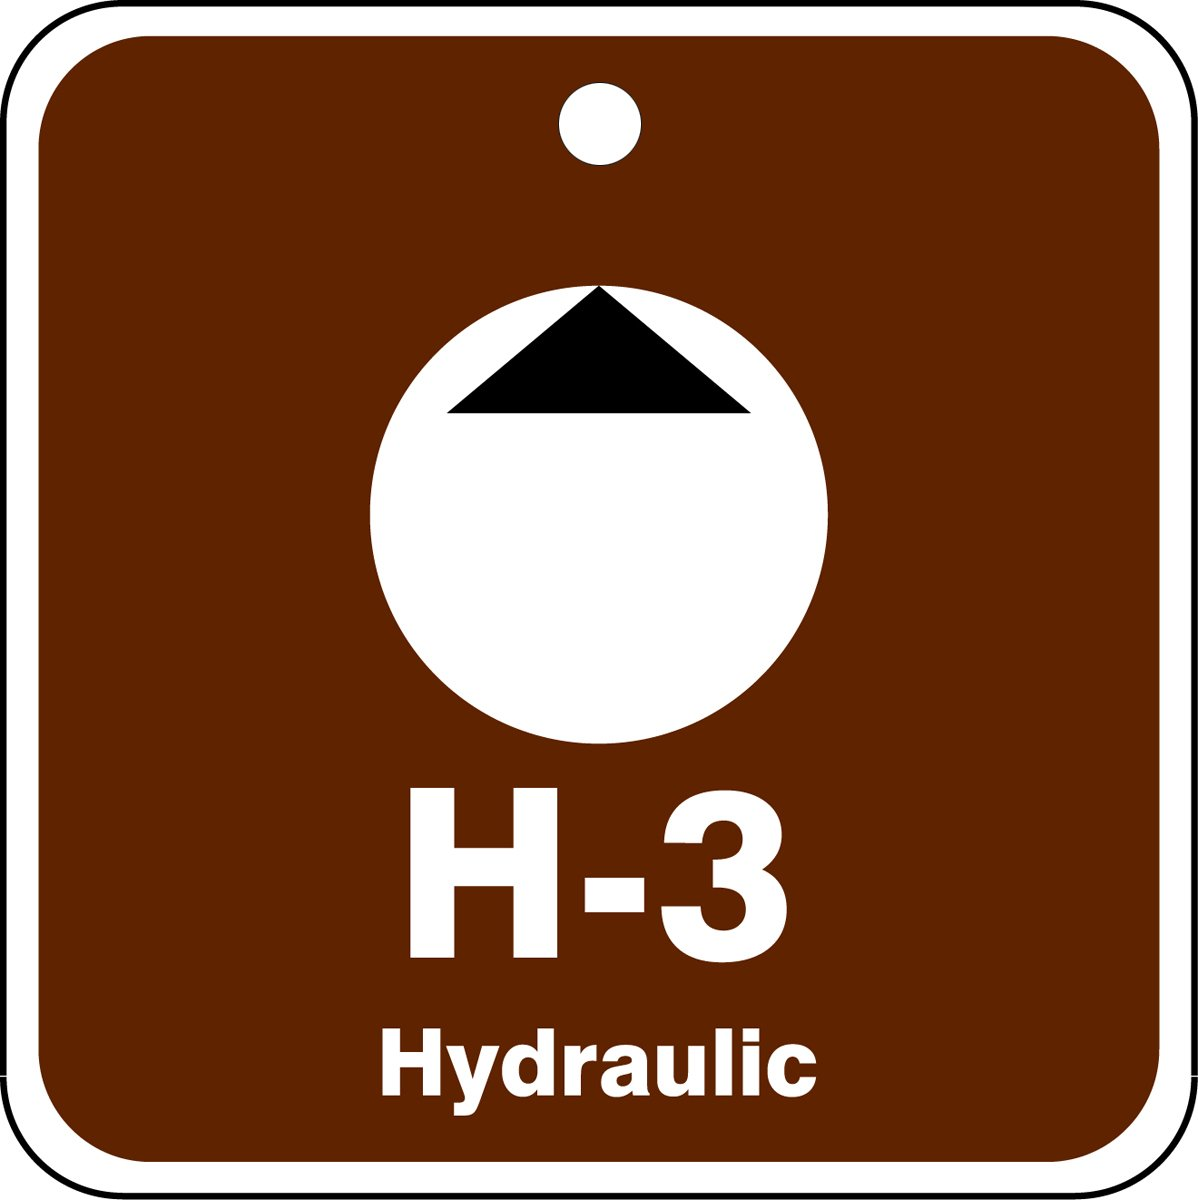 2-1//2 W x 2-1//2 L Accuform TDK503VPM PlasticH-3 Hydraulic Energy Source Shape ID Tag 2-1//2 W x 2-1//2 L White//Black on Brown Pack of 5